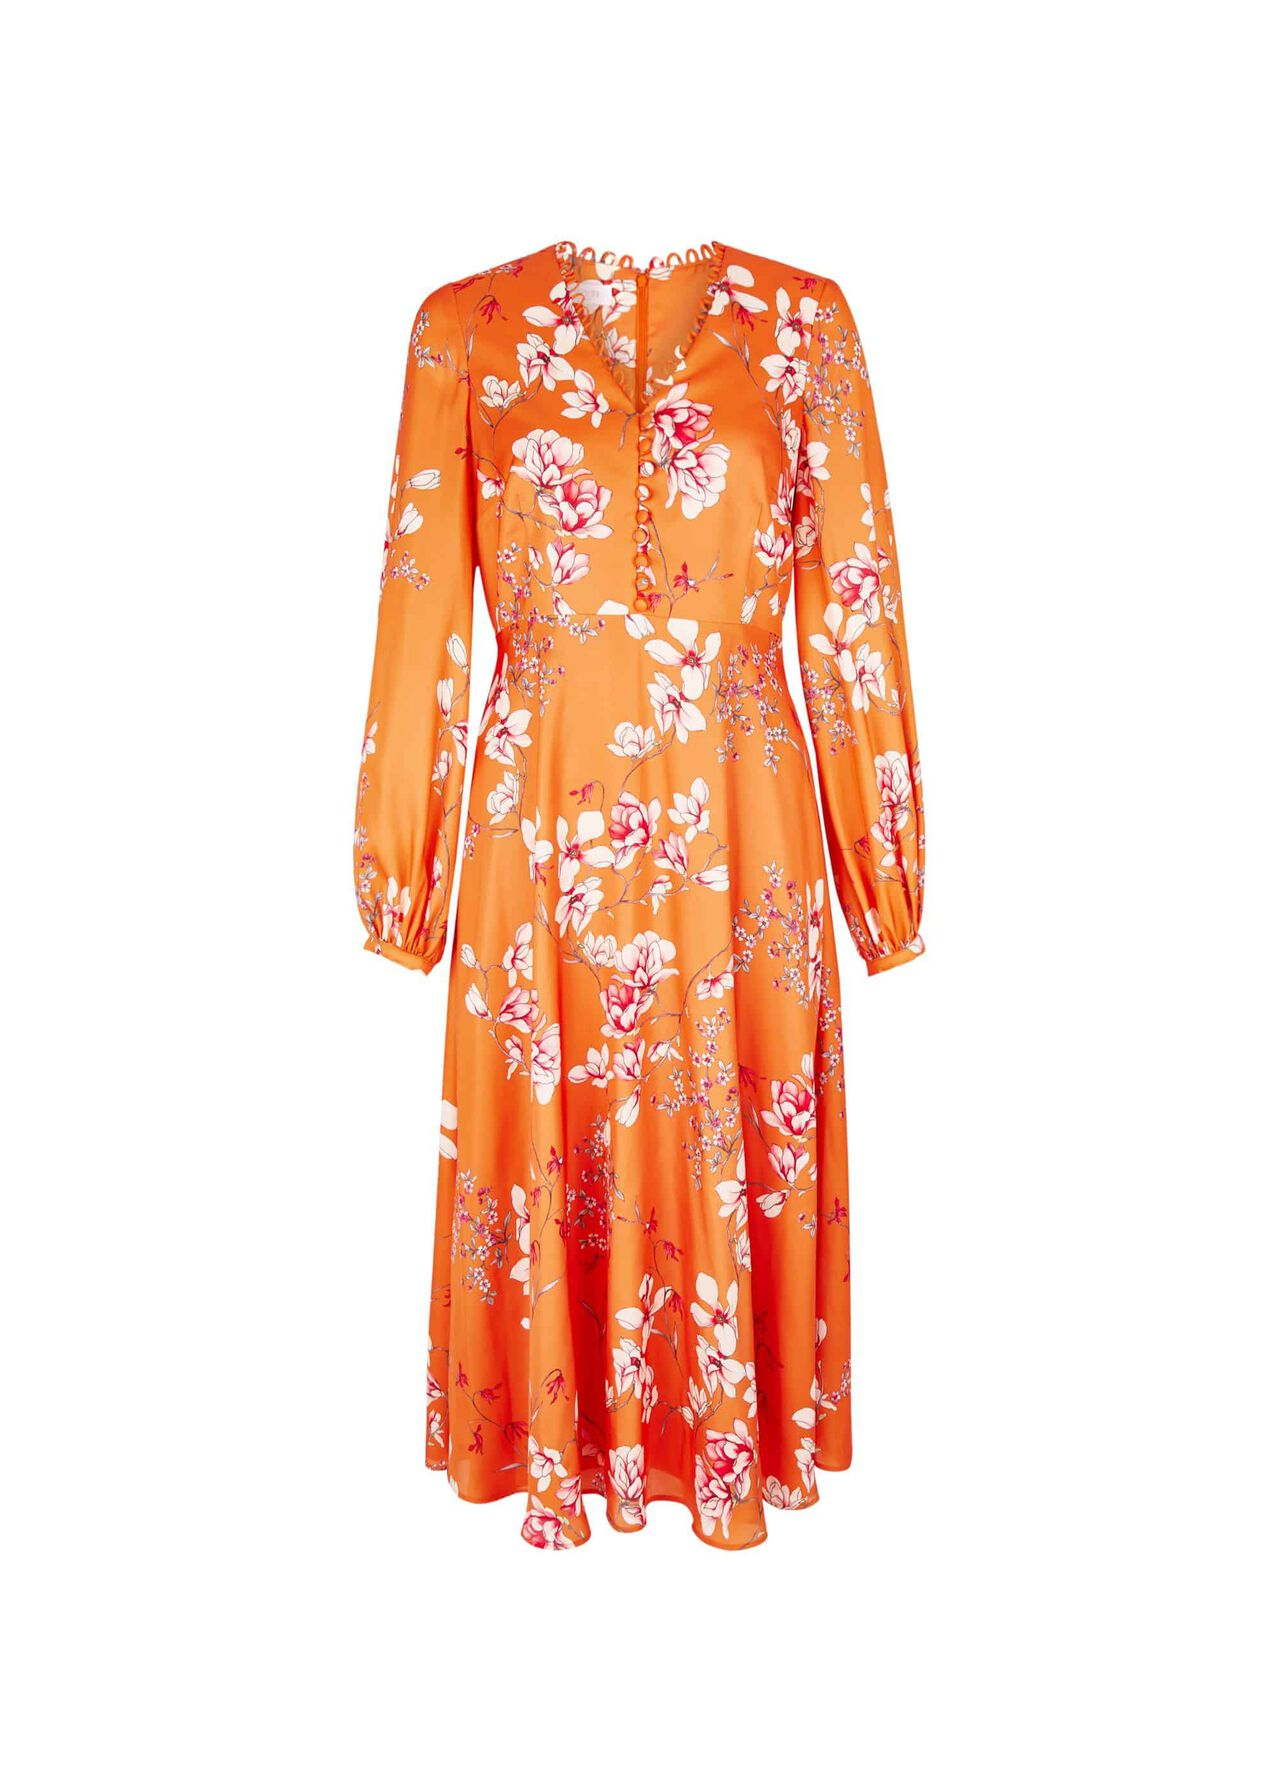 Ferrier Dress Orange